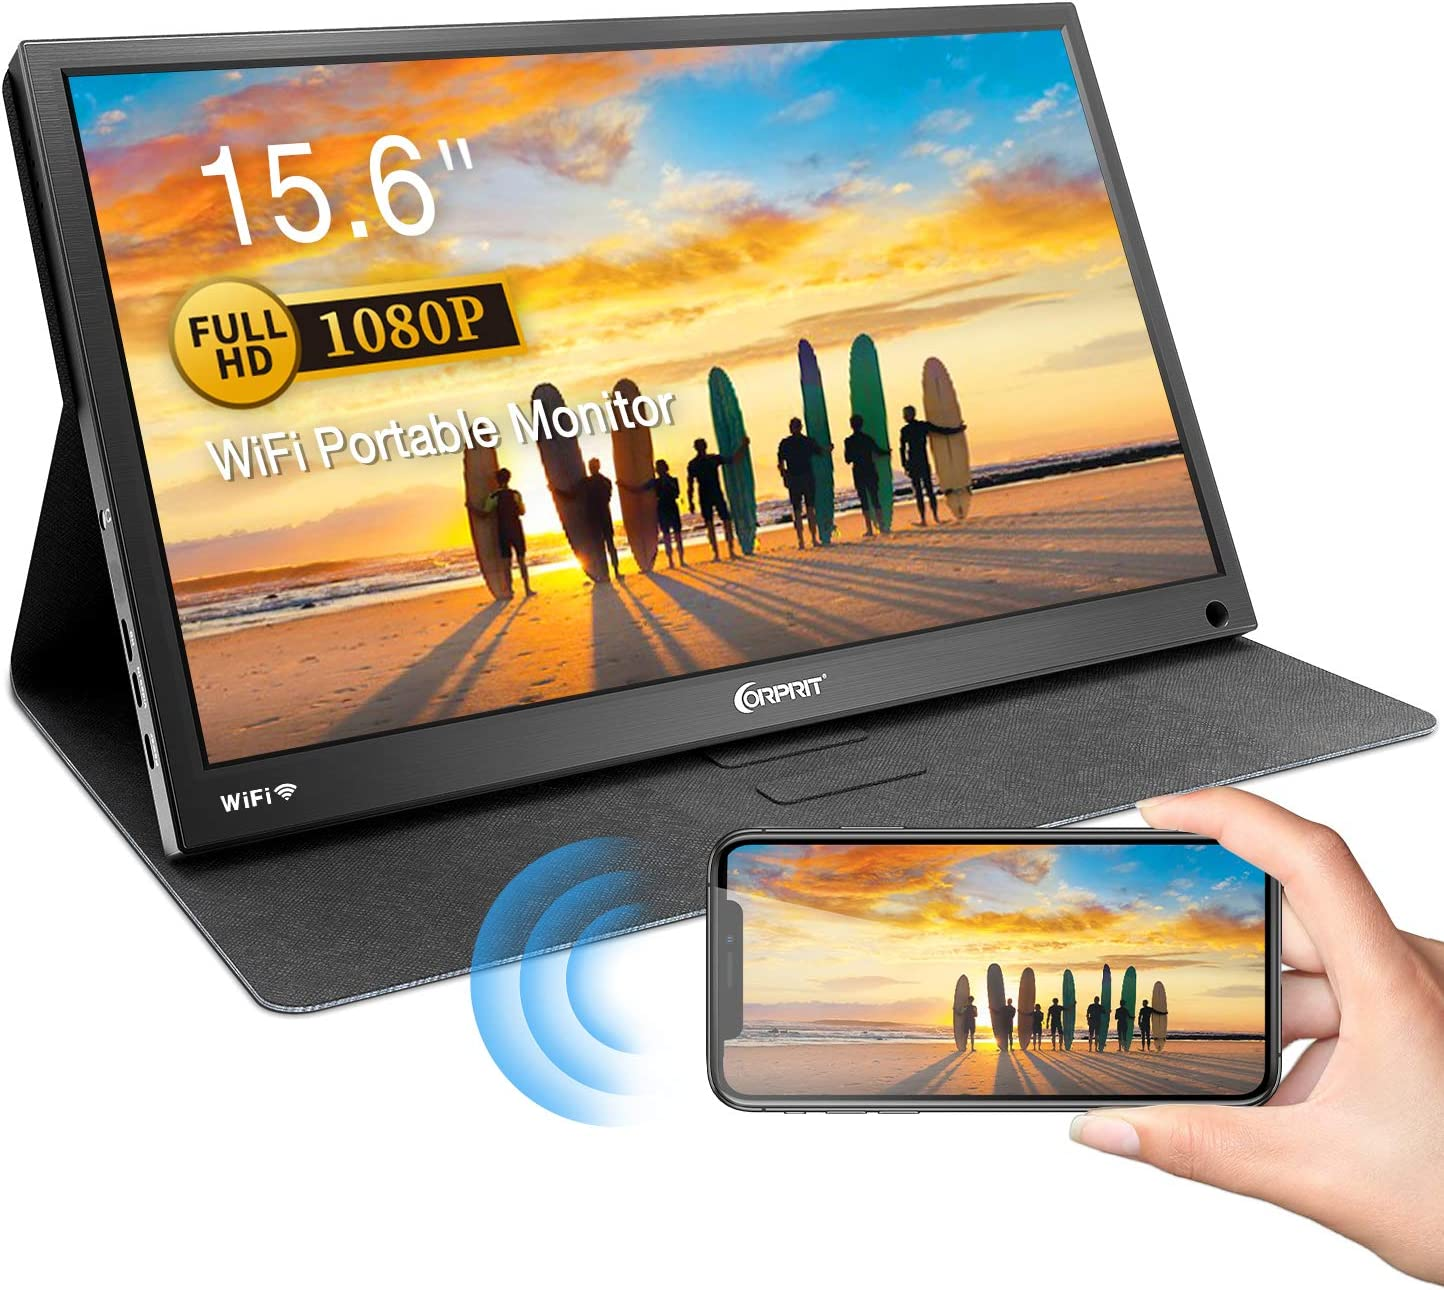 """Wireless Portable Monitor, Corprit Wireless Display Airplay Miracast Monitor for iPhone Samsung Screen Mirroring, 15.6"""" 1080P FHD USB C Monitor HDMI External Secondary Display for Laptop PC PS4 Xbox"""